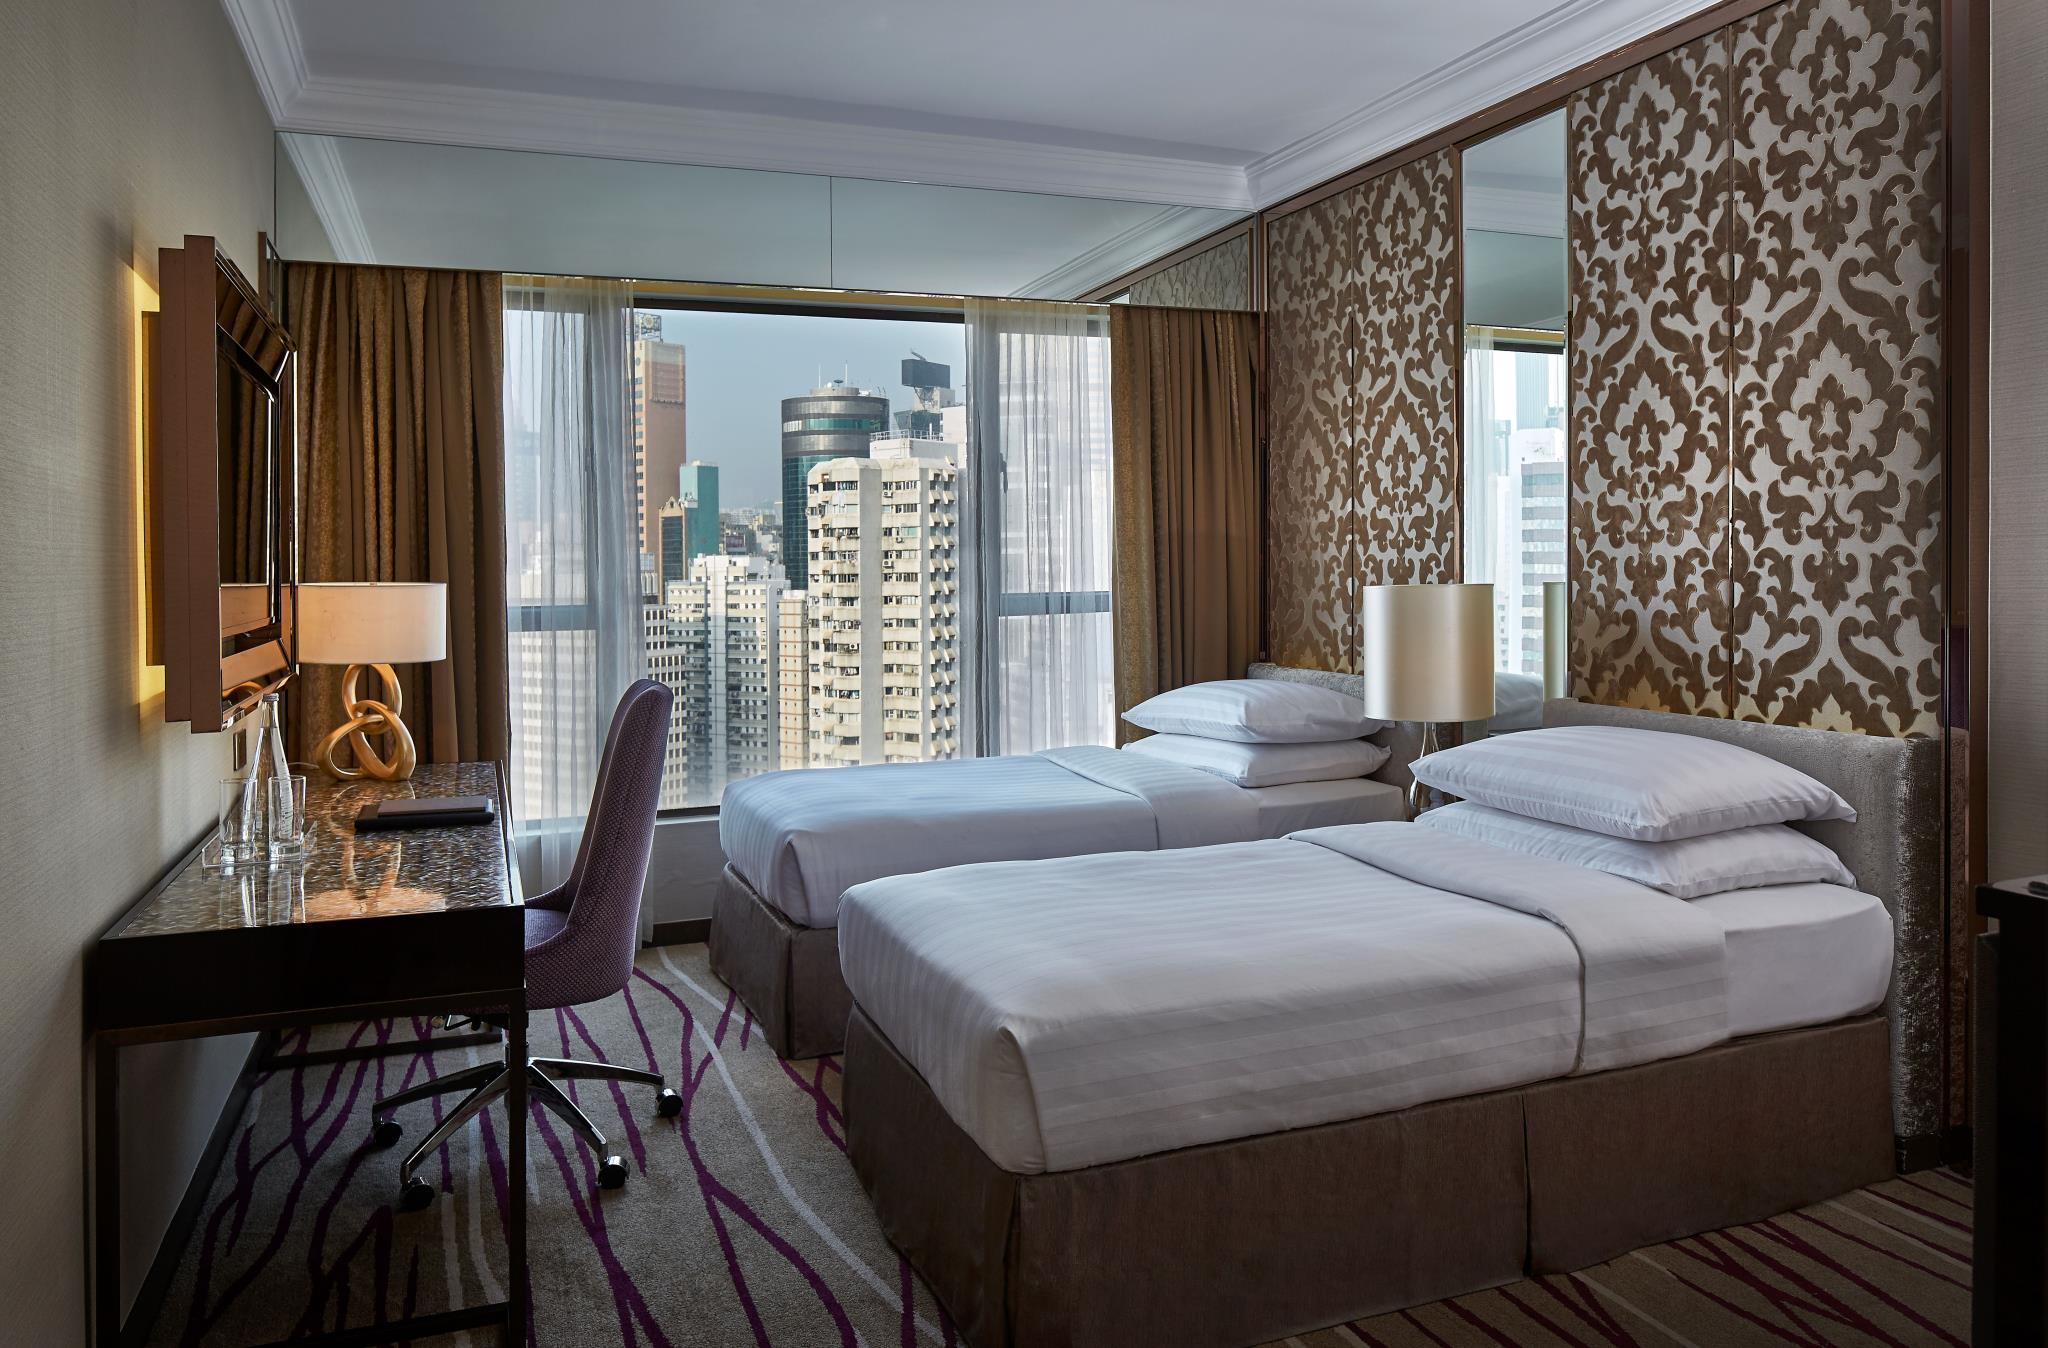 Dorsett Anslutande Rum Grand Deluxe med stadsutsikt över Causeway Bay (Dorsett Grand Deluxe Causeway Bay City View Connecting Rooms)